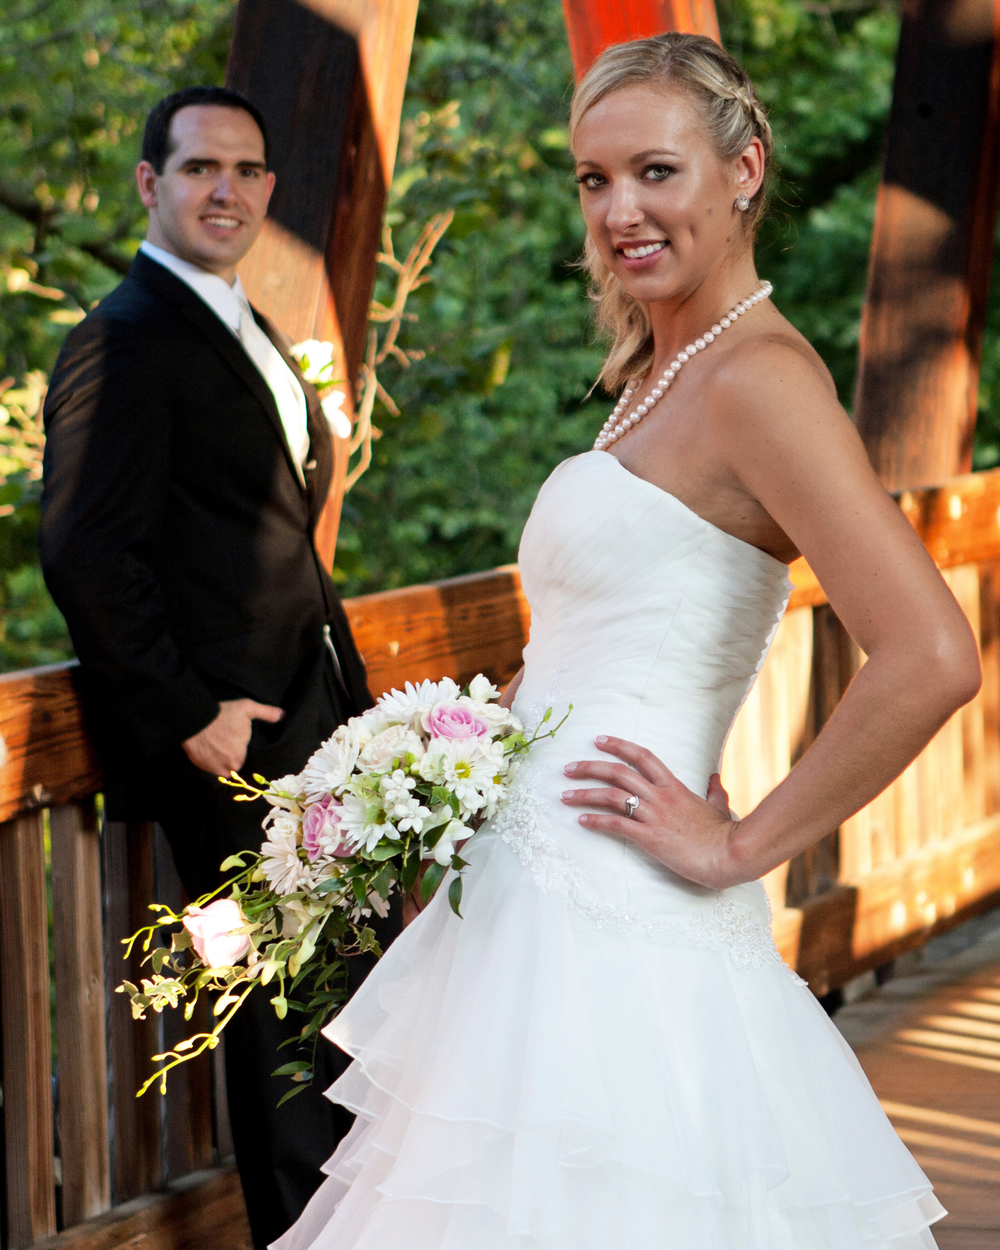 Jenna and Ryan 8x10-2.jpg